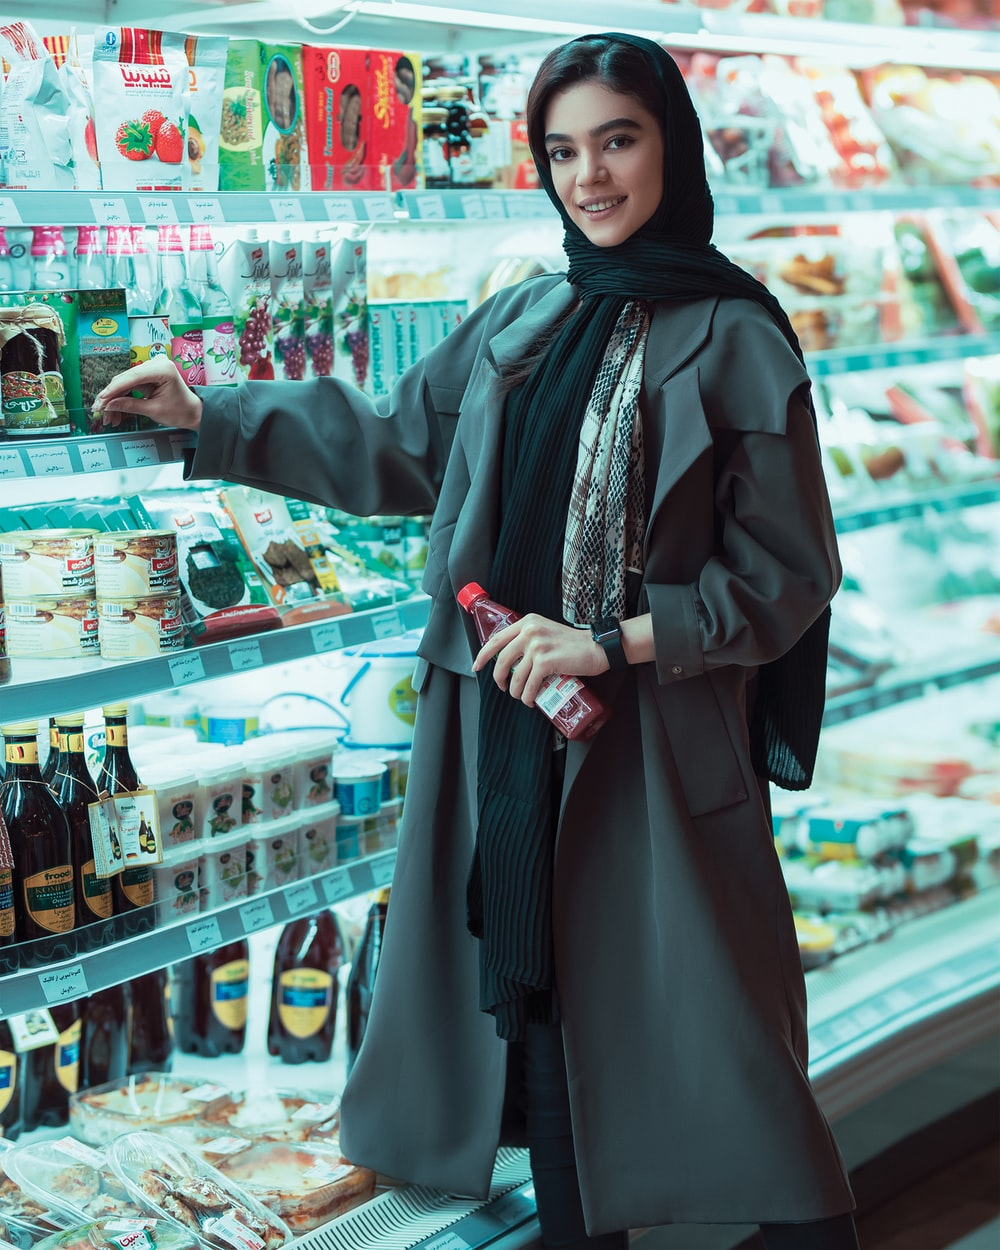 woman wearing black scarf near the refrigerator